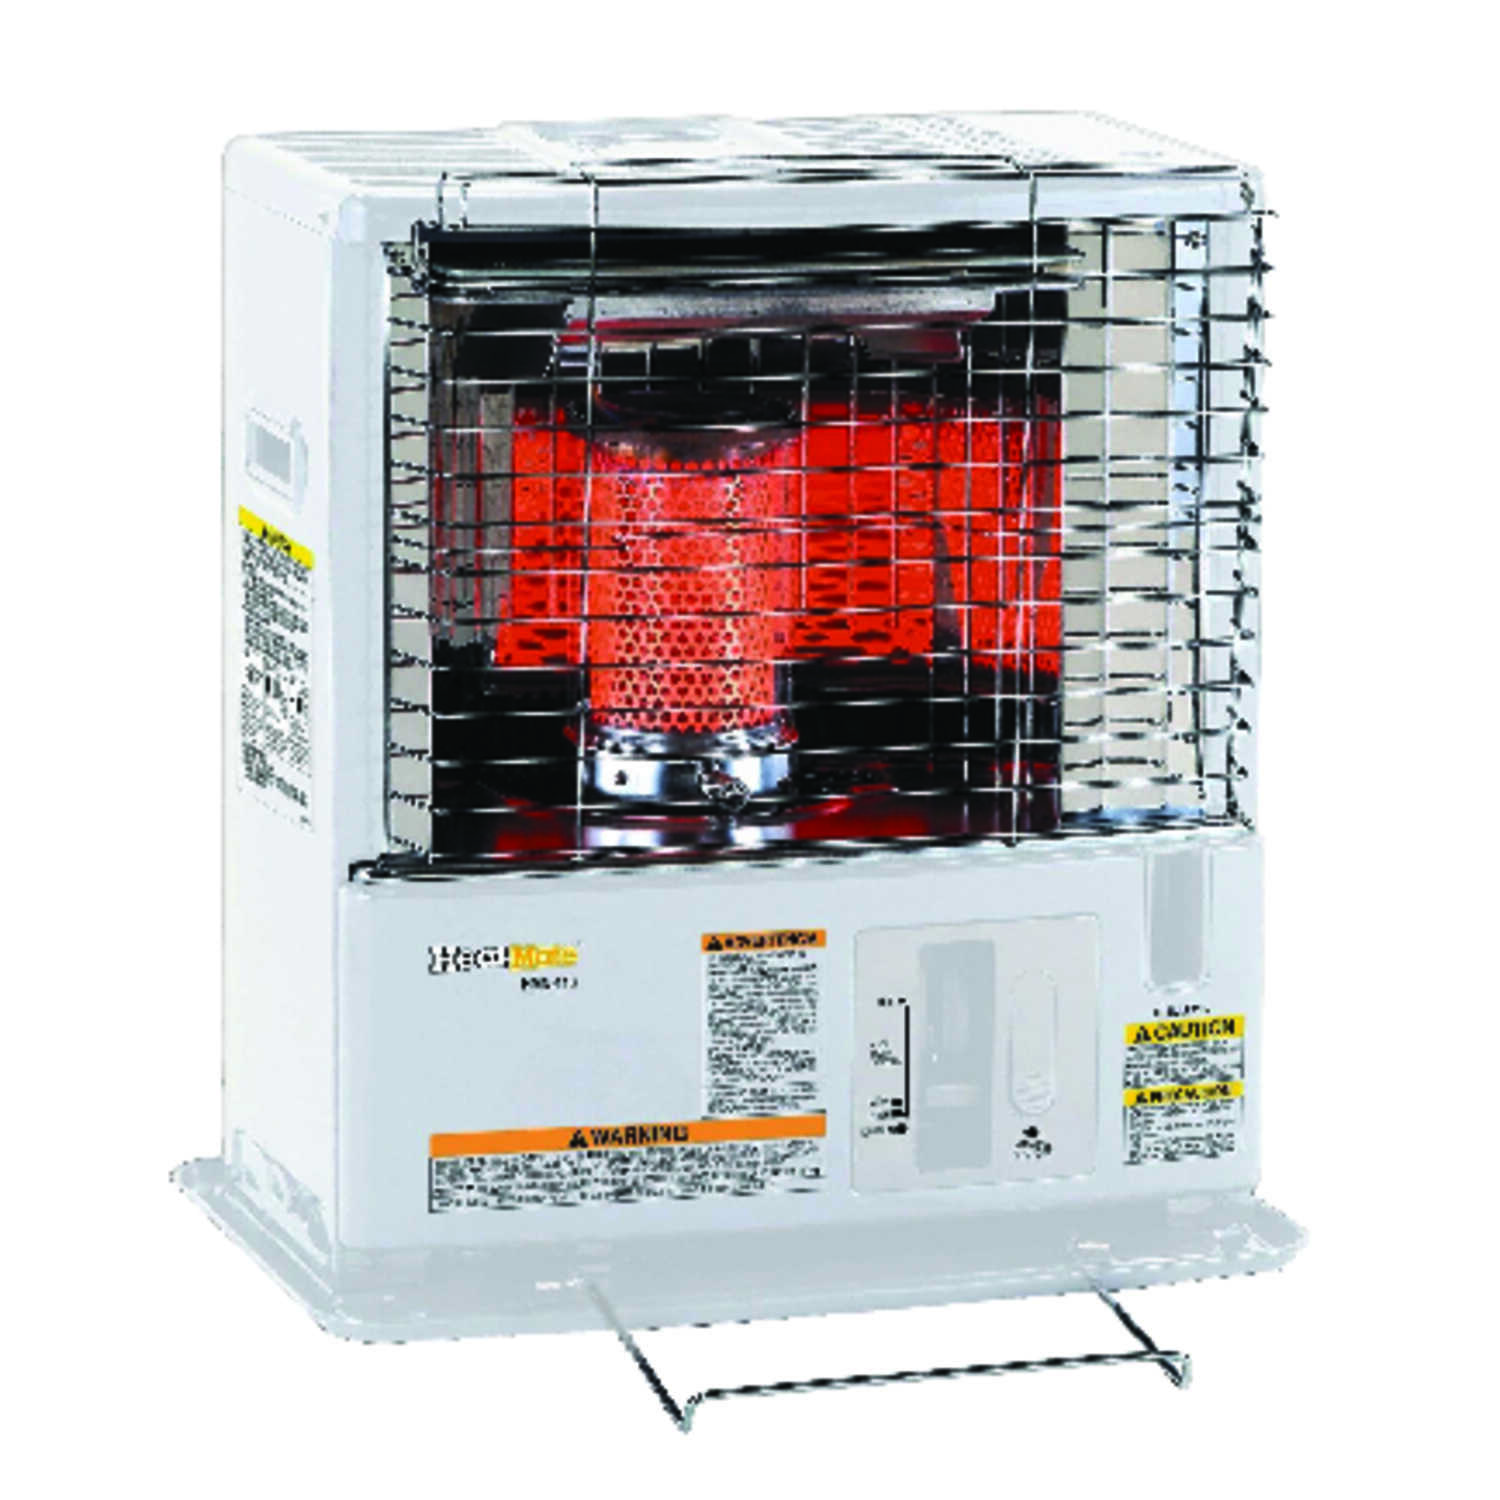 Heat Mate  10000 BTU/hr. 380 sq. ft. Radiant Heater  Radiant